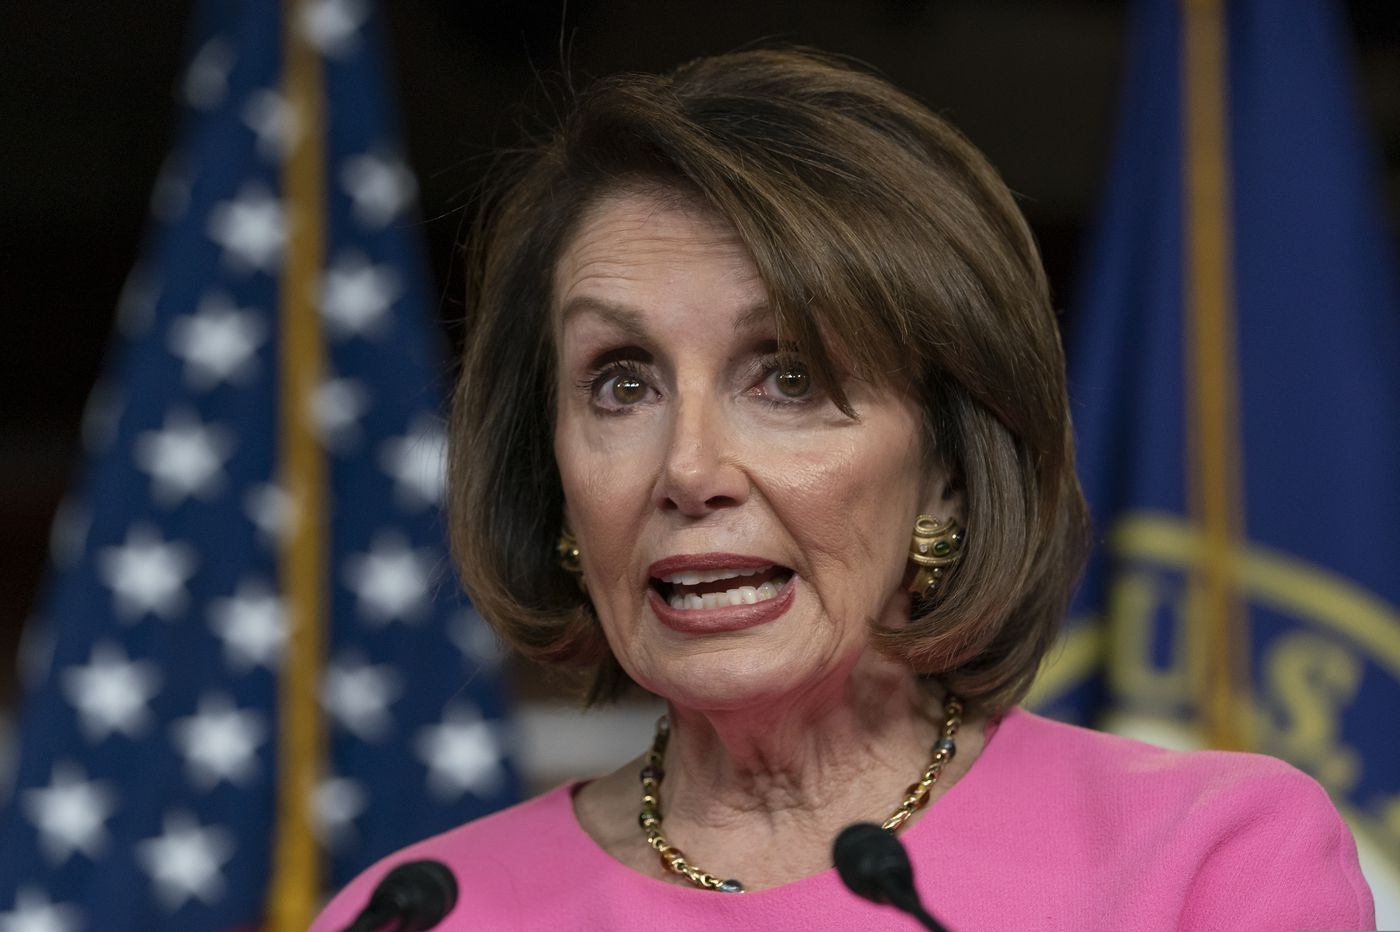 Insults flying, Pelosi questions Trump's fitness for office, he fires back